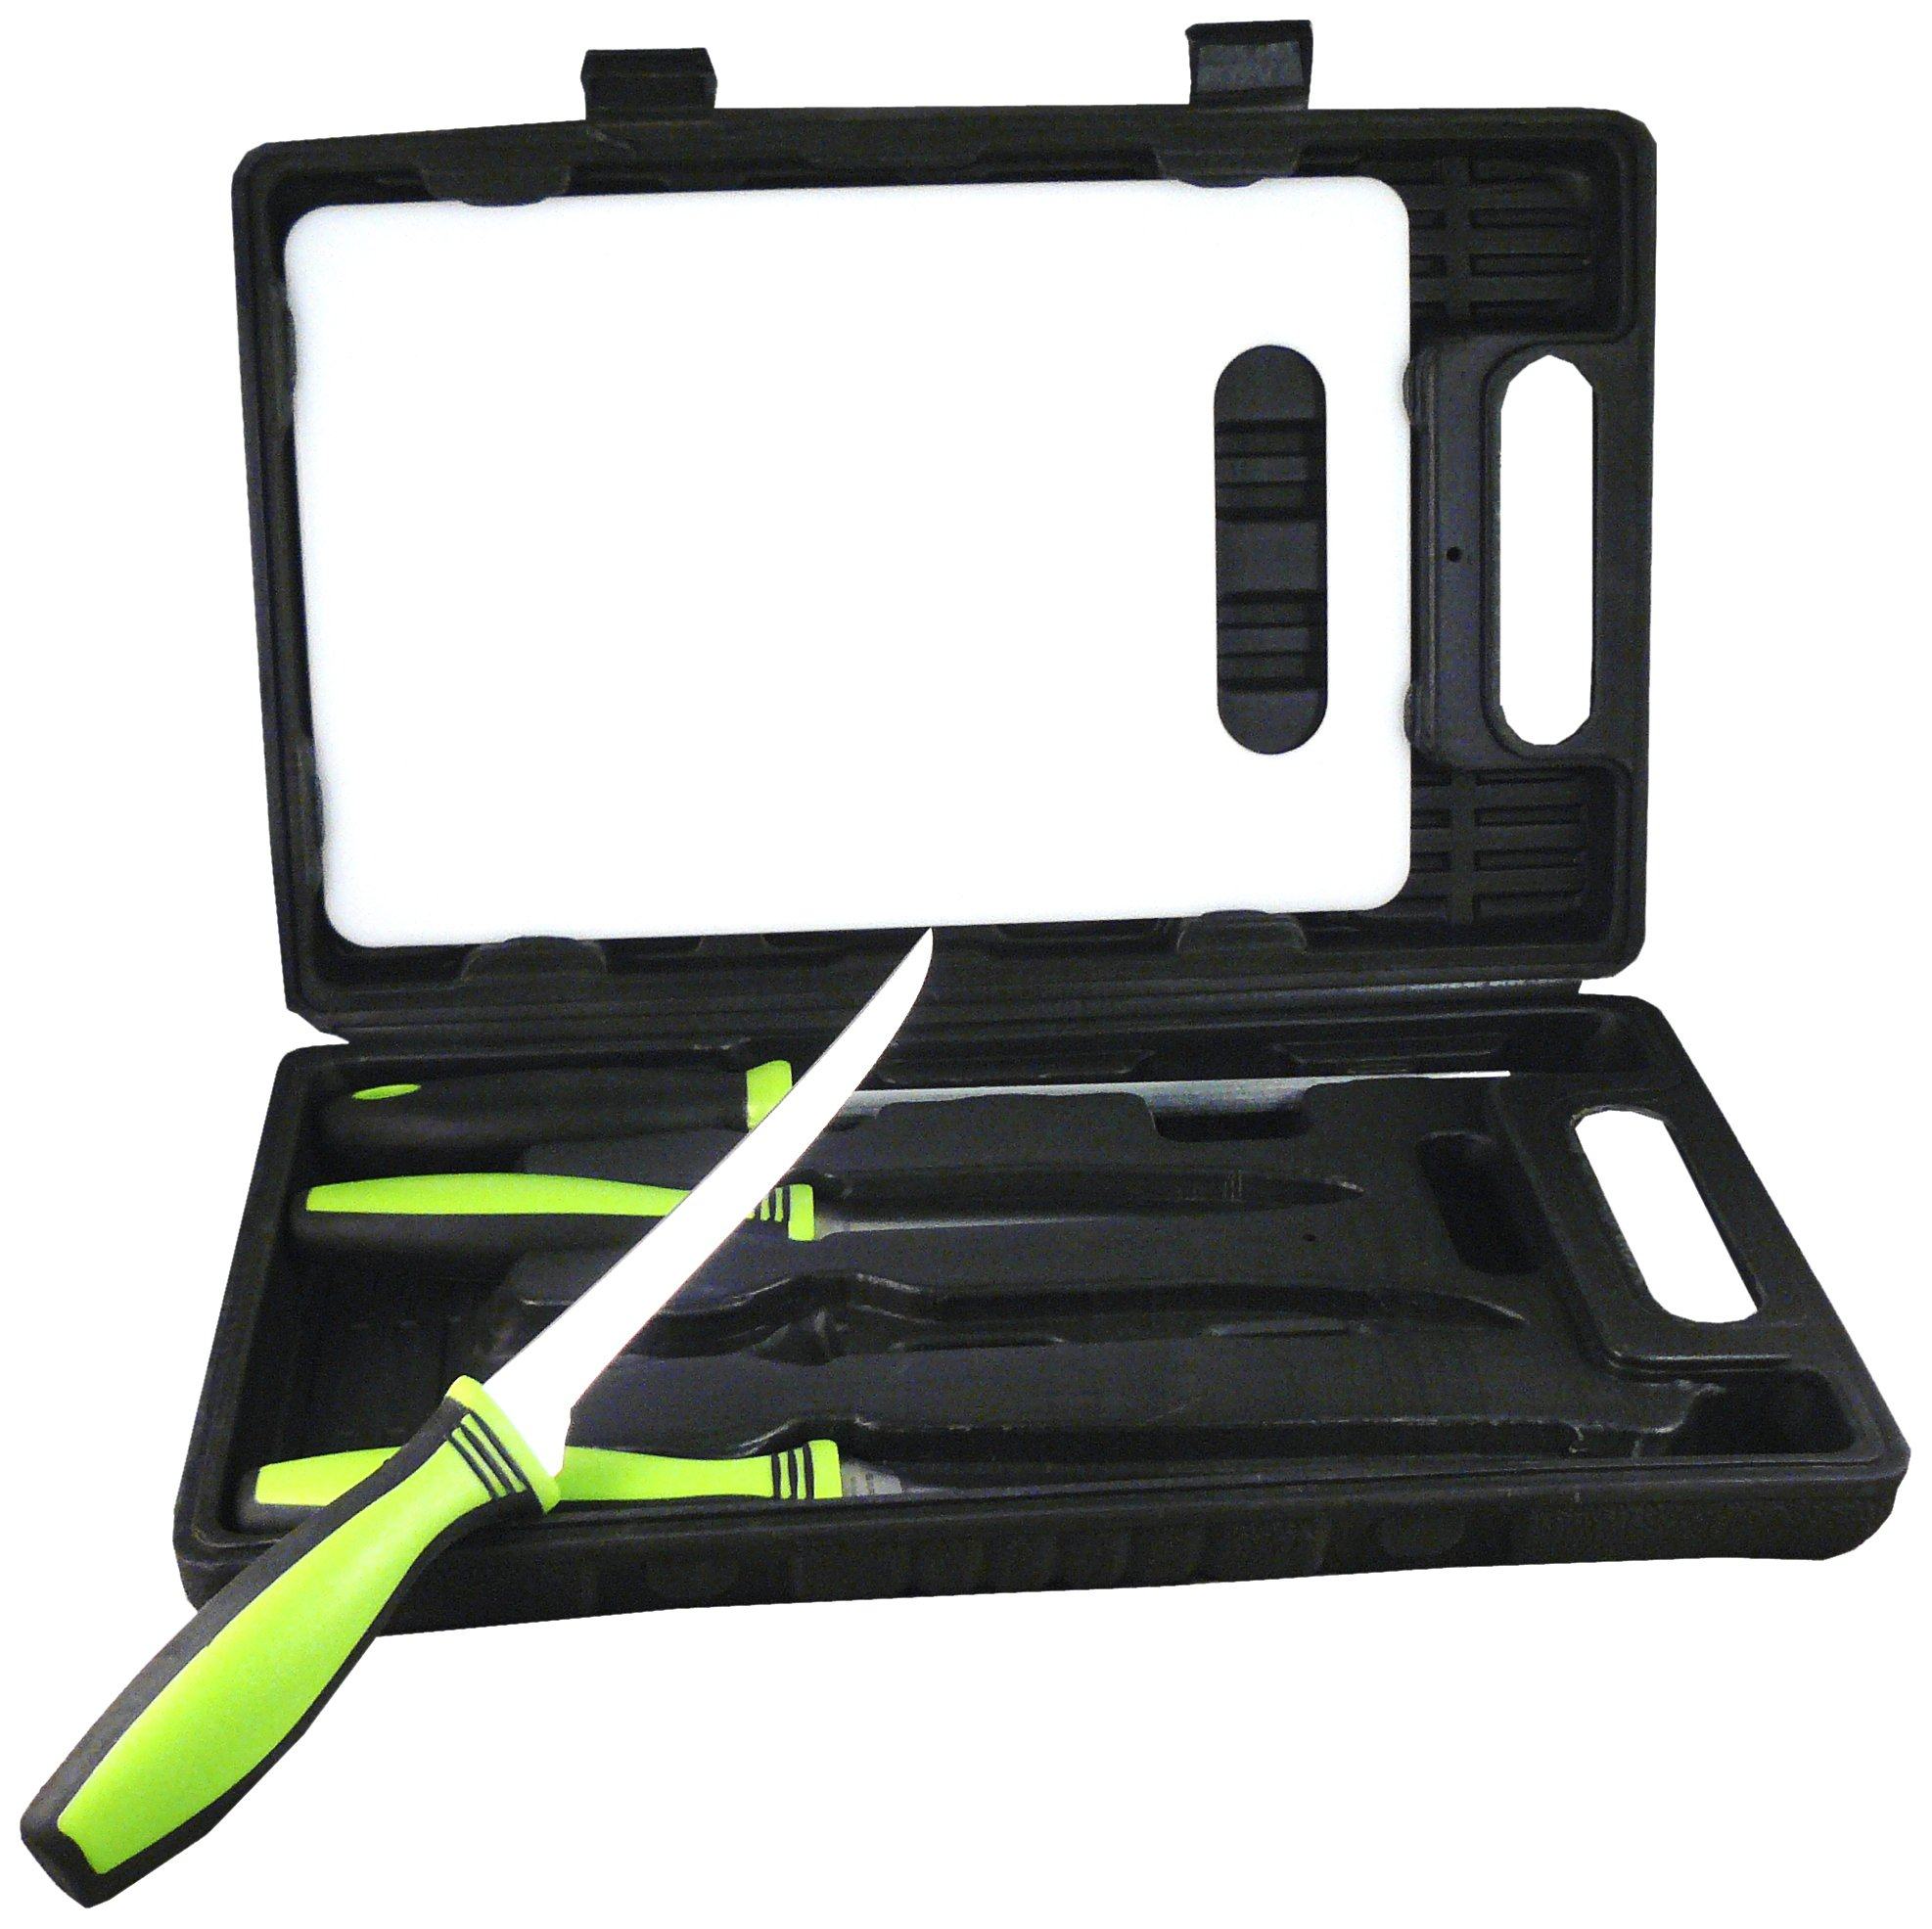 Sarge Knives SK-130 Fishing Kit with 6-Inch and 7-1/2-Inch Fillet knives, 4-3/4-Inch Blade Serrated Knife, Sharpener, Cutting Board and Carrying Case by Sarge Knives